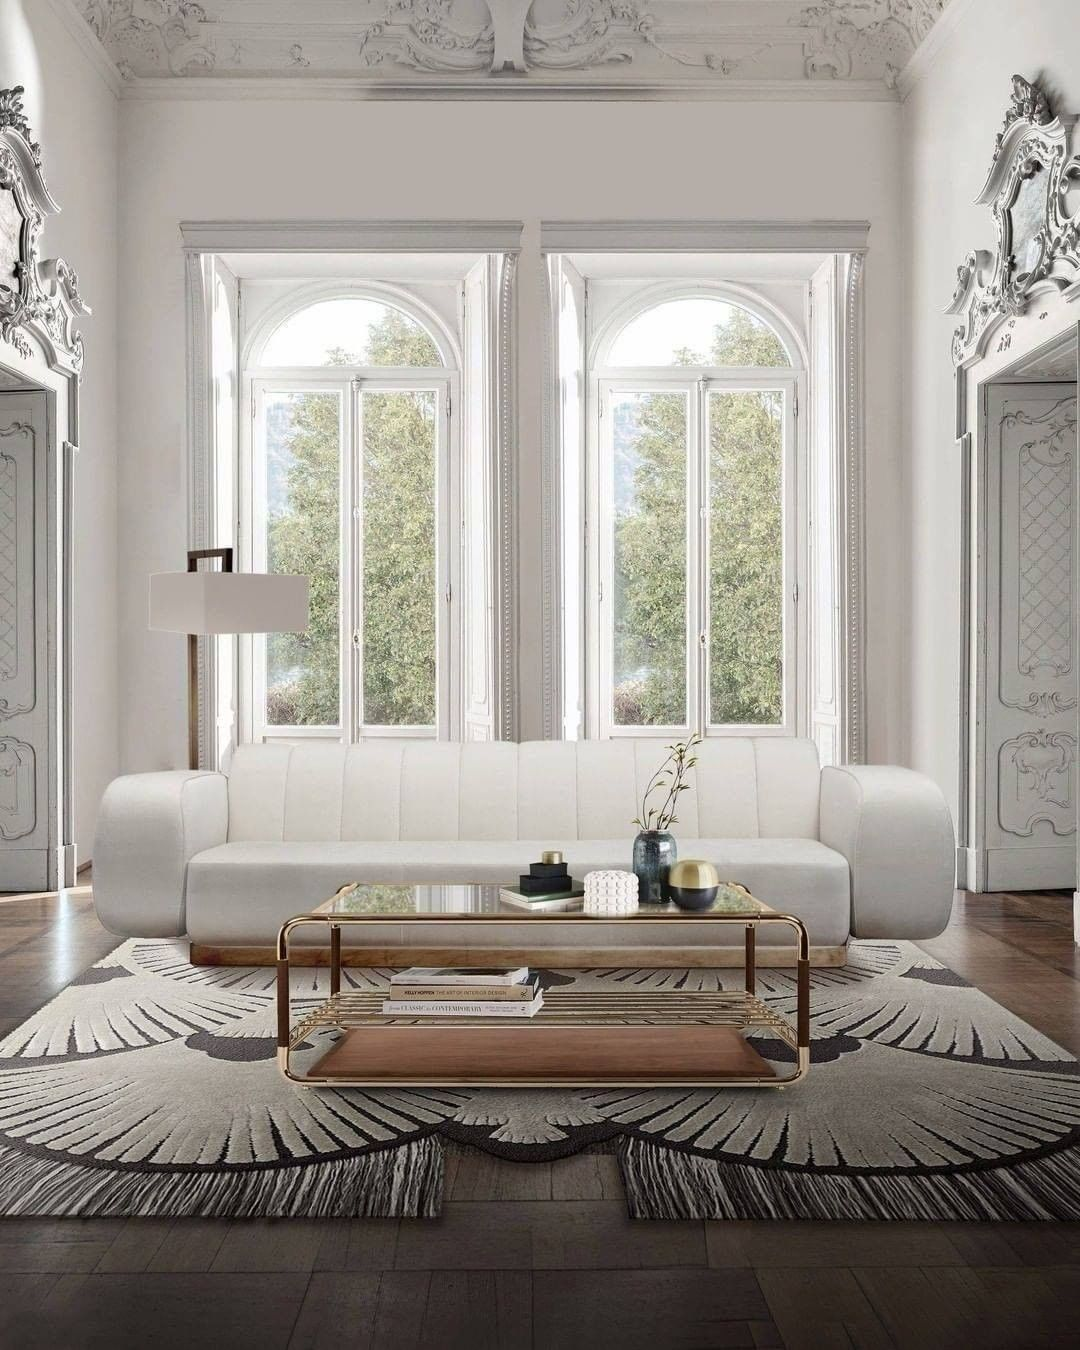 GET INSPIRED BY THIS STUNNING LIVING ROOM DECOR